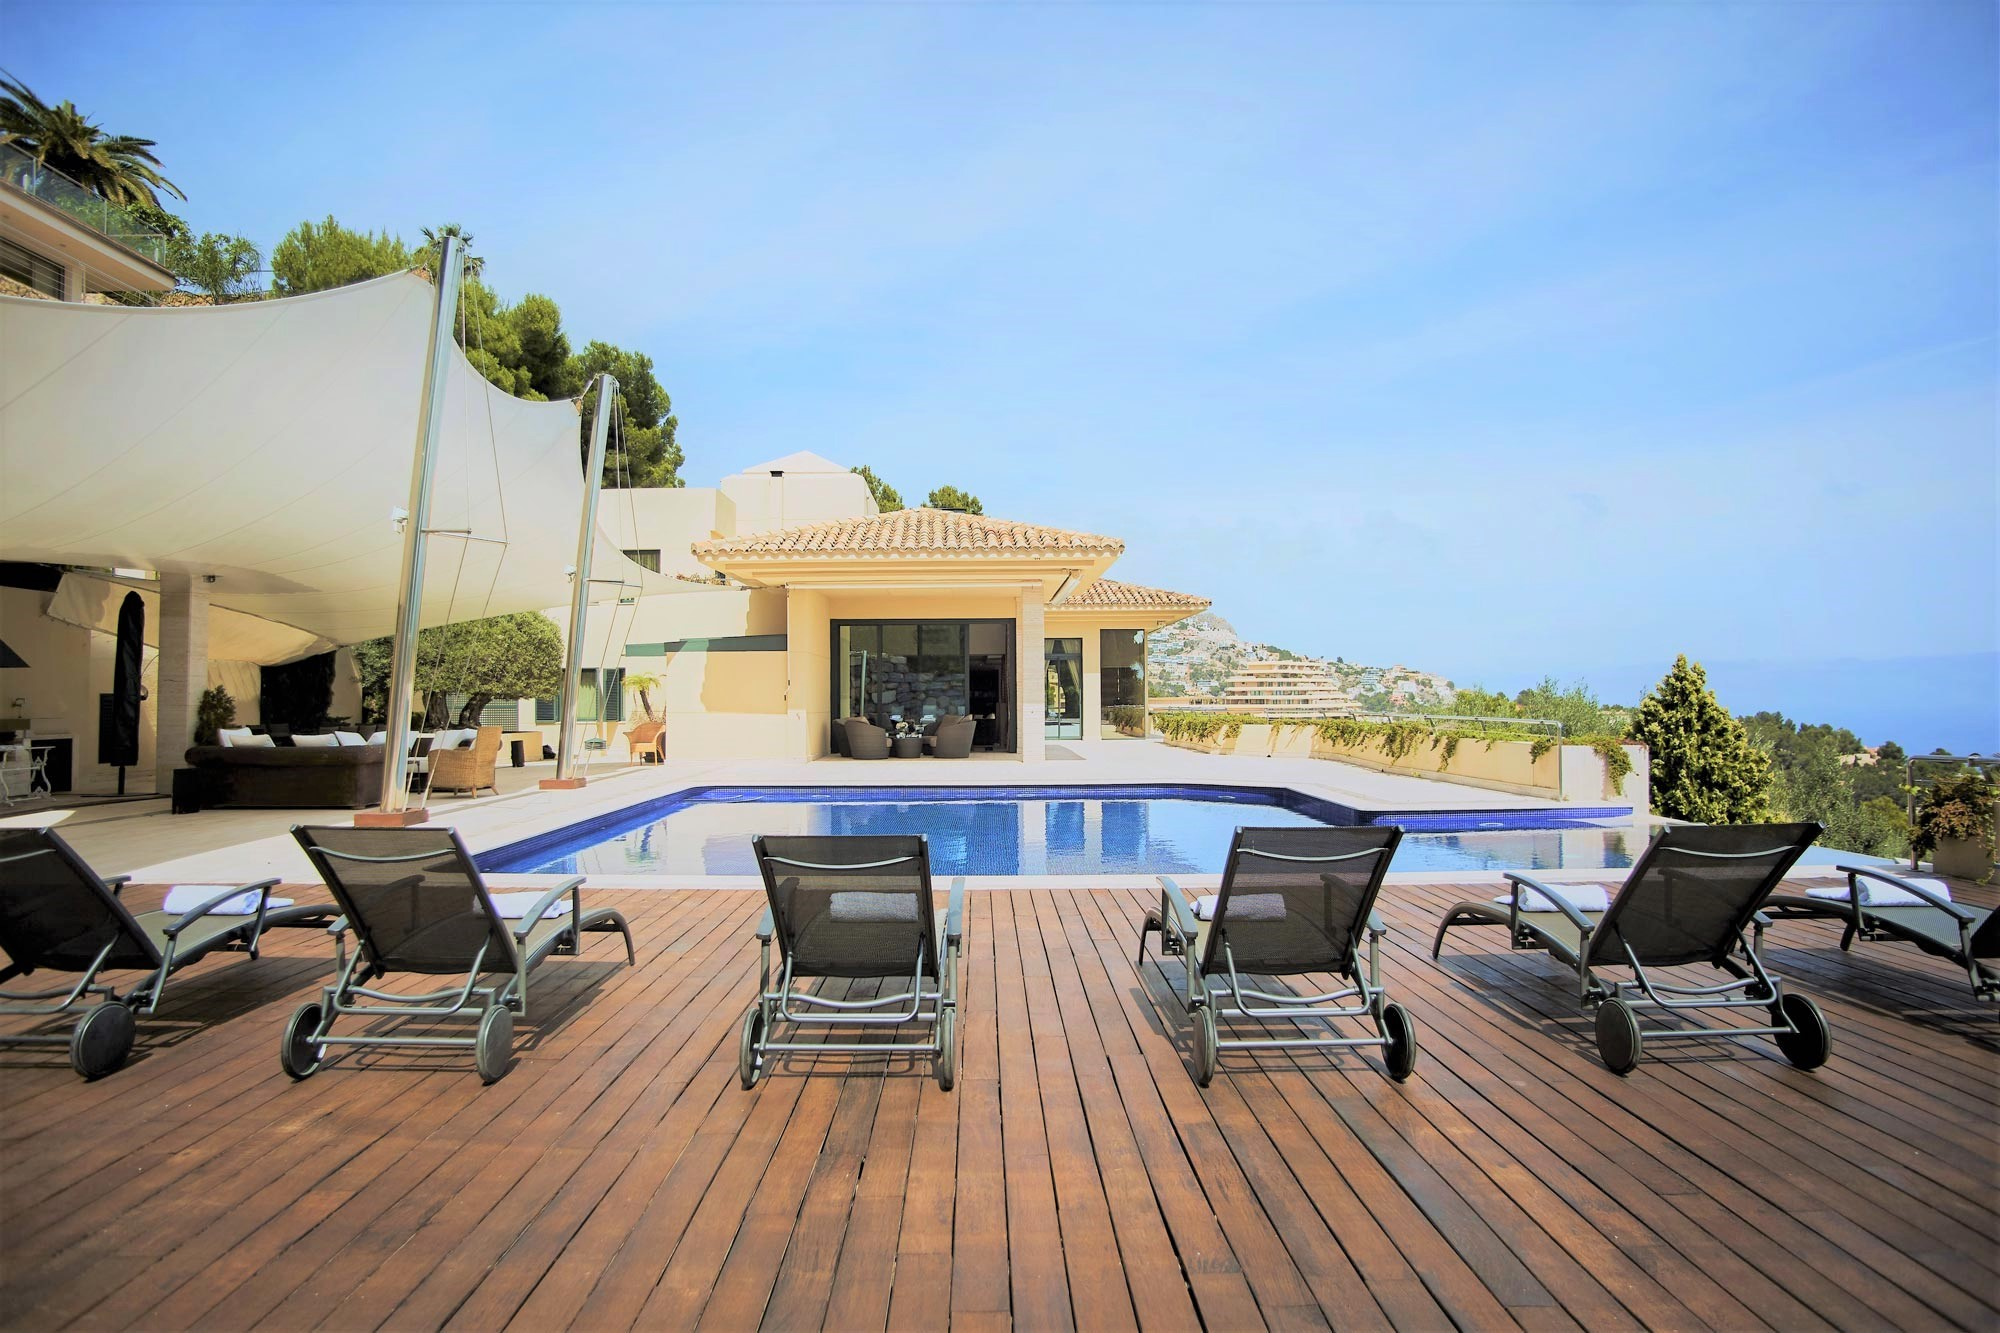 luxury villa rental, Spain, ESPALT 3226